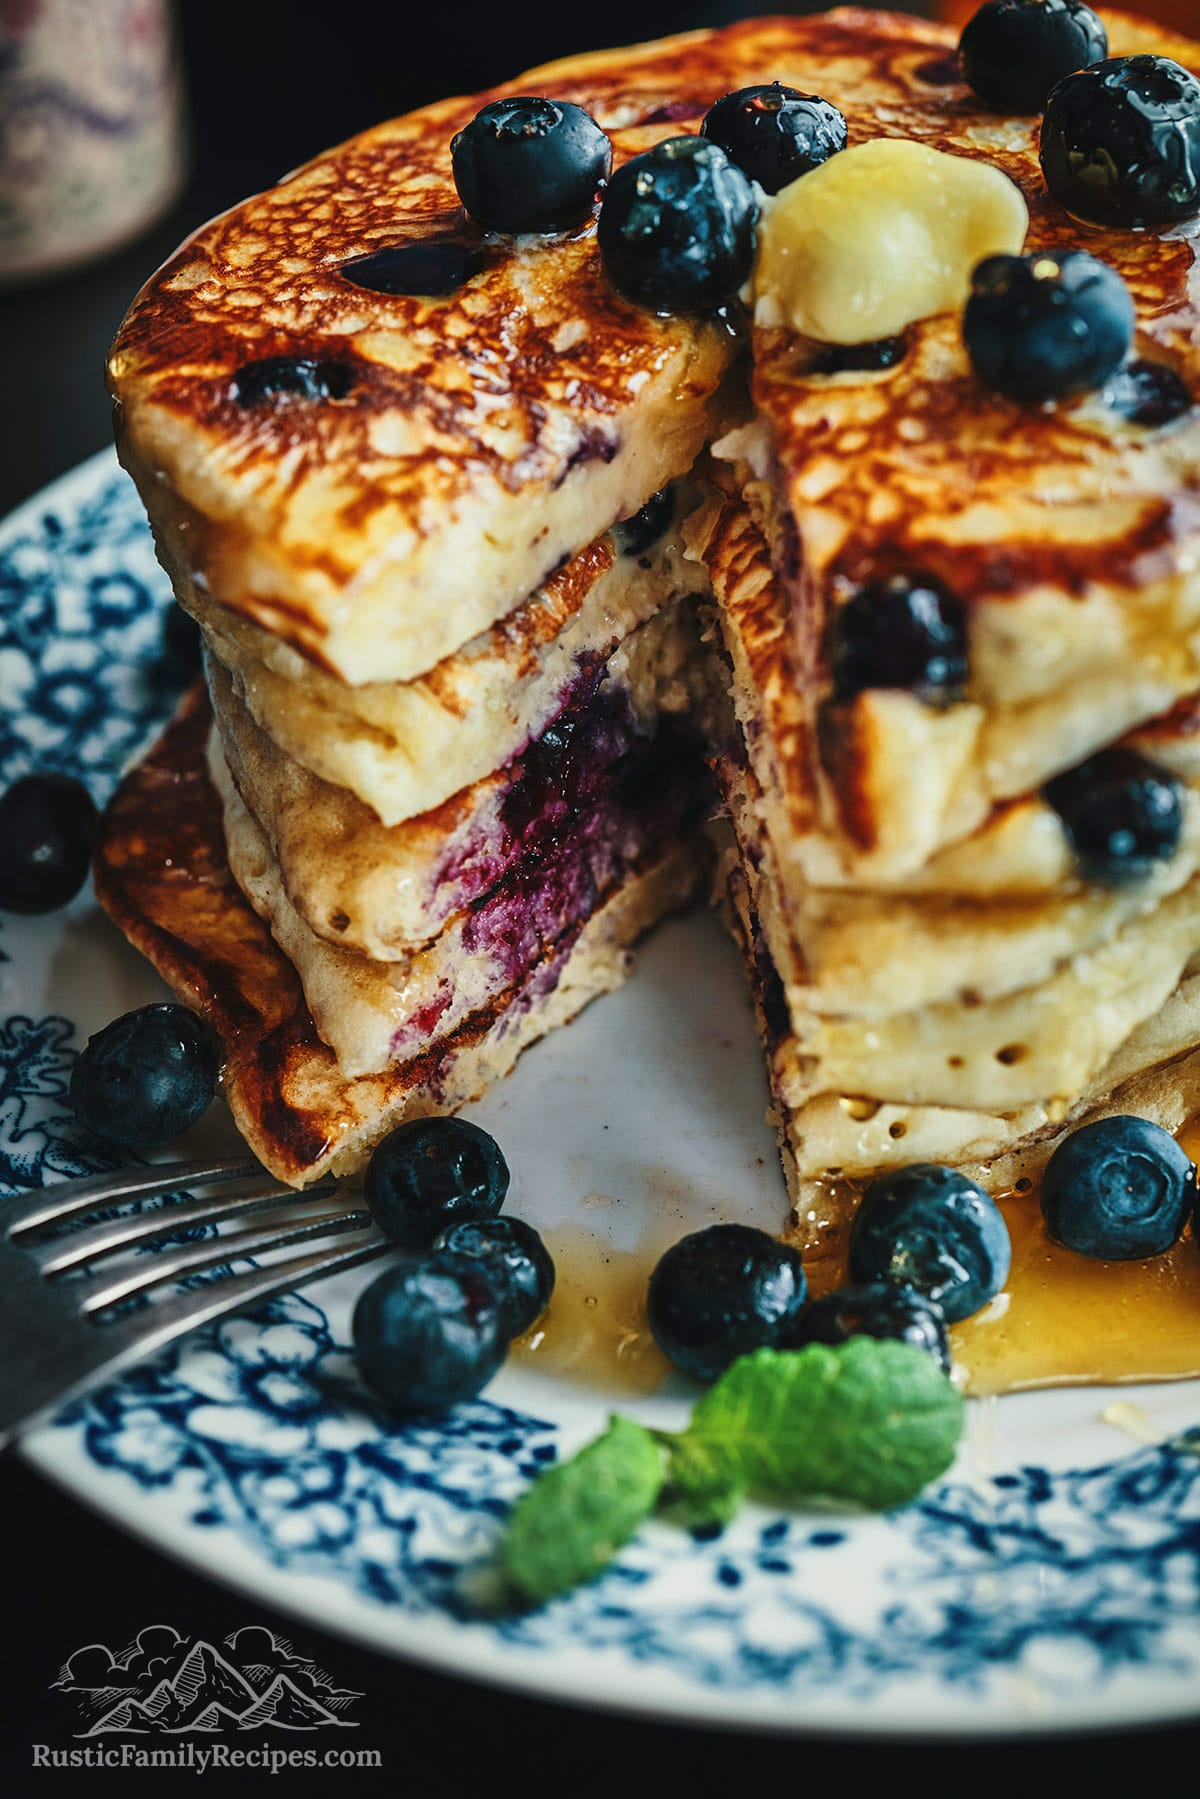 A tall stack of multigrain pancakes with a wedge cut out, topped with blueberries and butter.